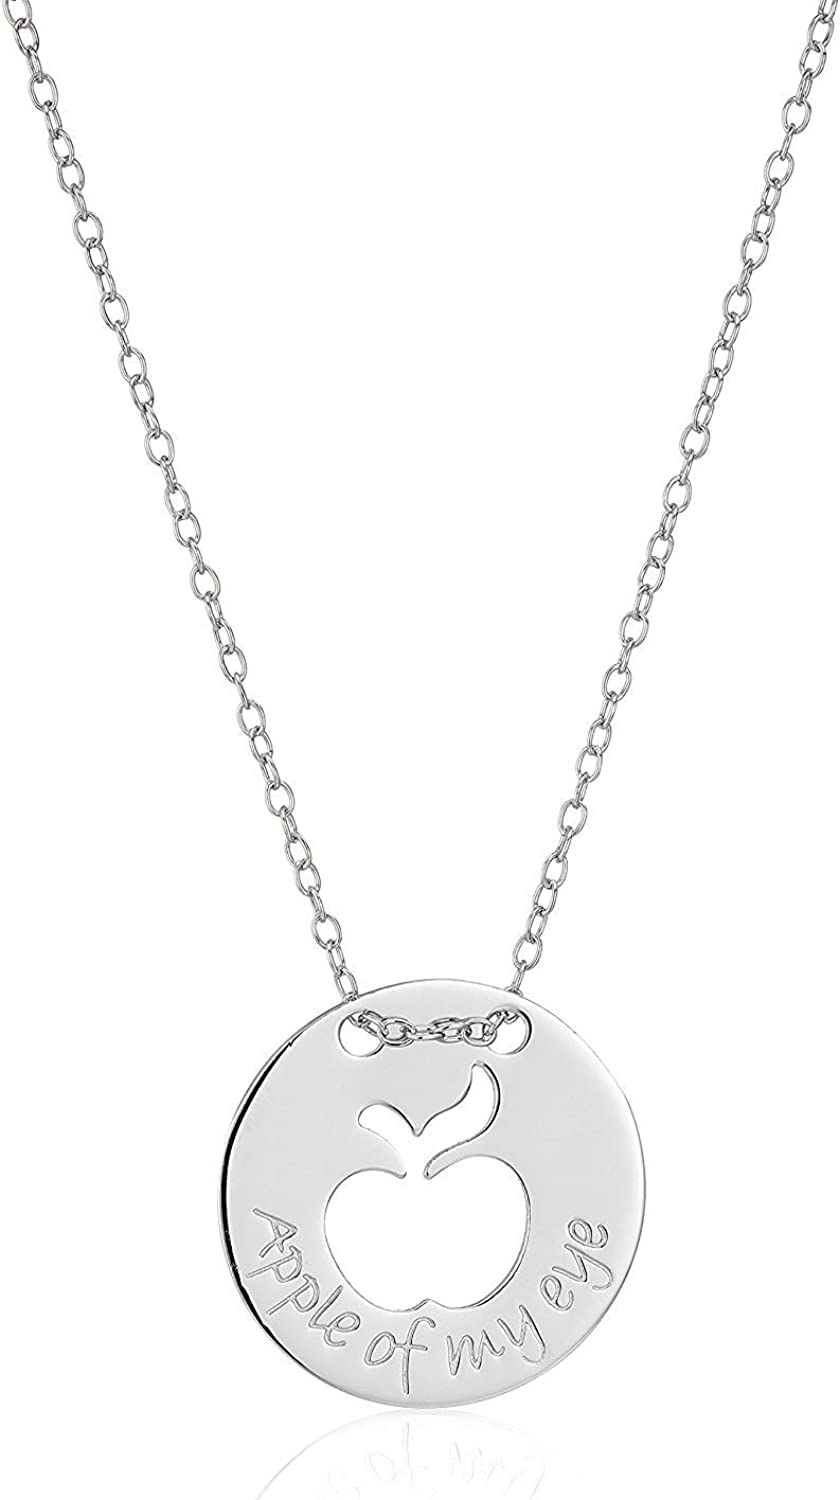 Plated 925 Sterling Silver Cutout Disc Necklace With 16.5